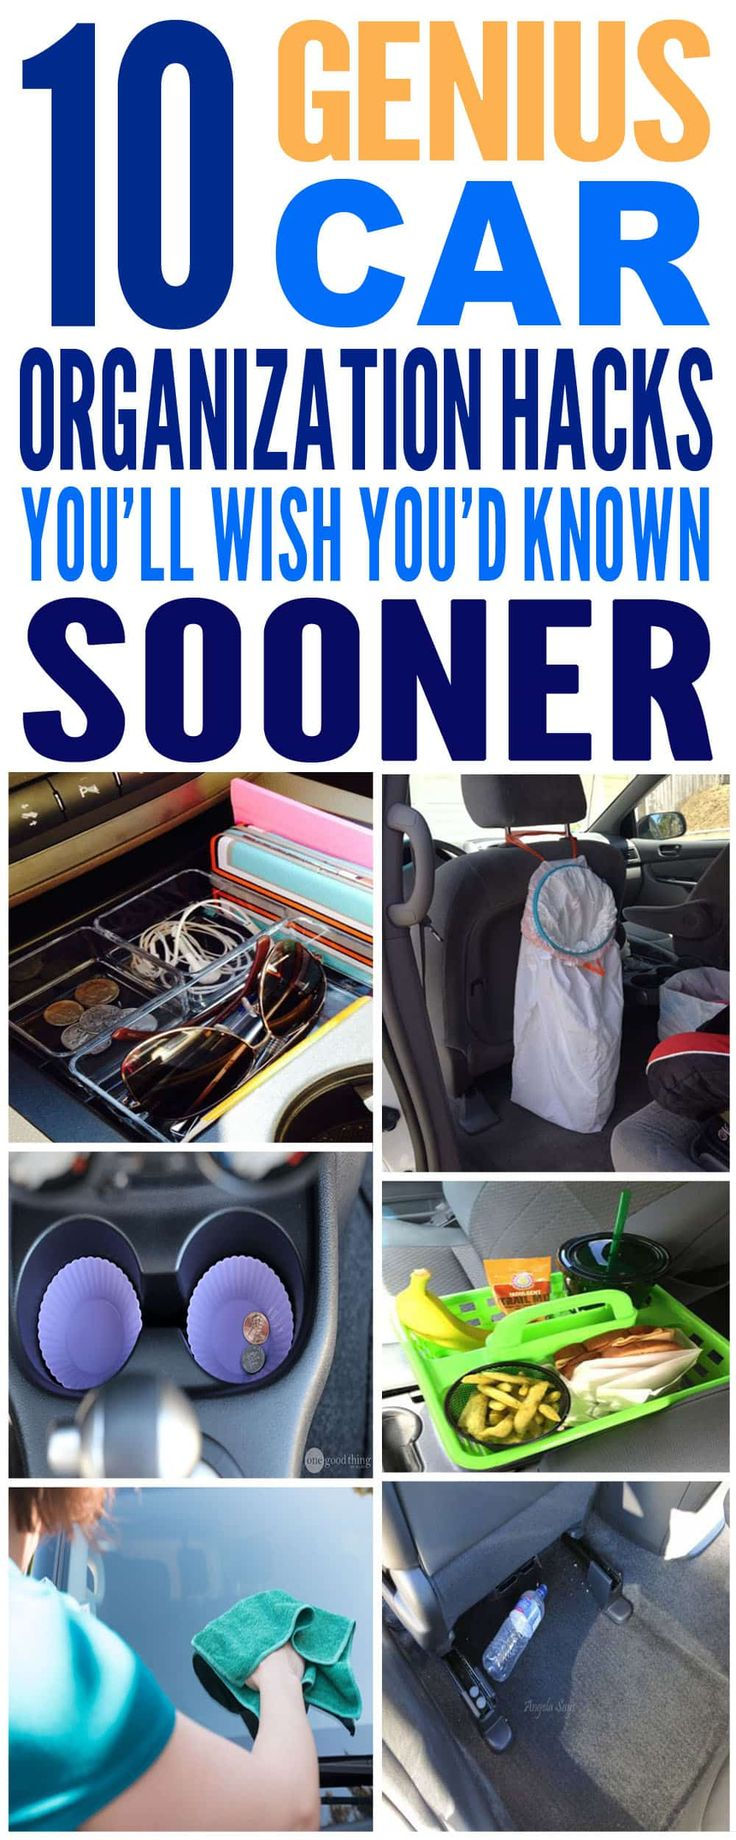 These are just the BEST car organization hacks I've ever seen! Glad to have found these amazing car organization diy ideas. Pinning for sure!!